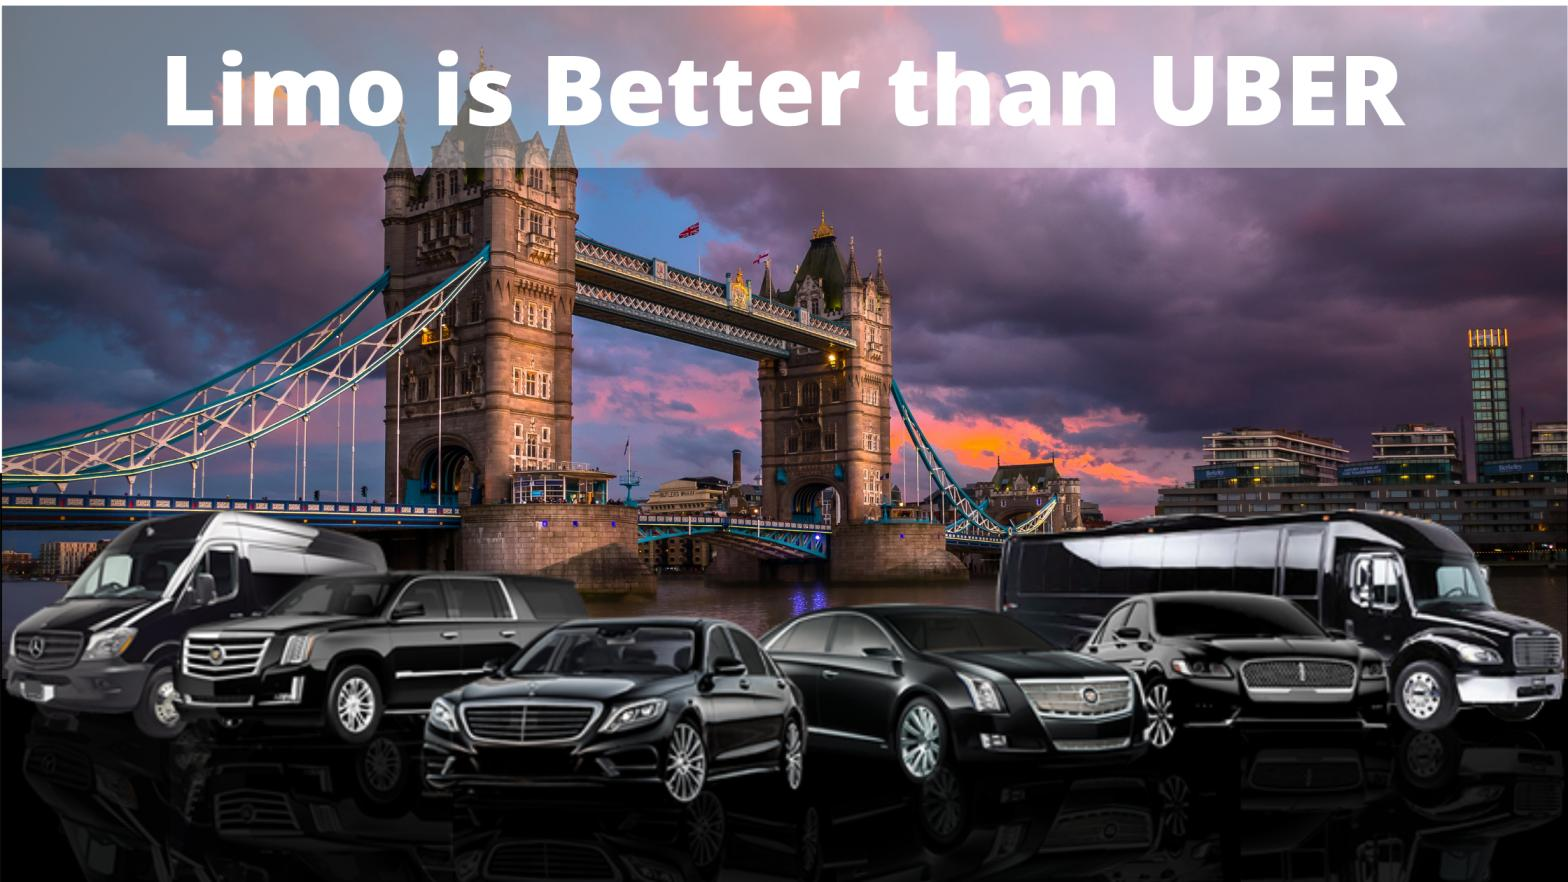 Limo is Better than UBER